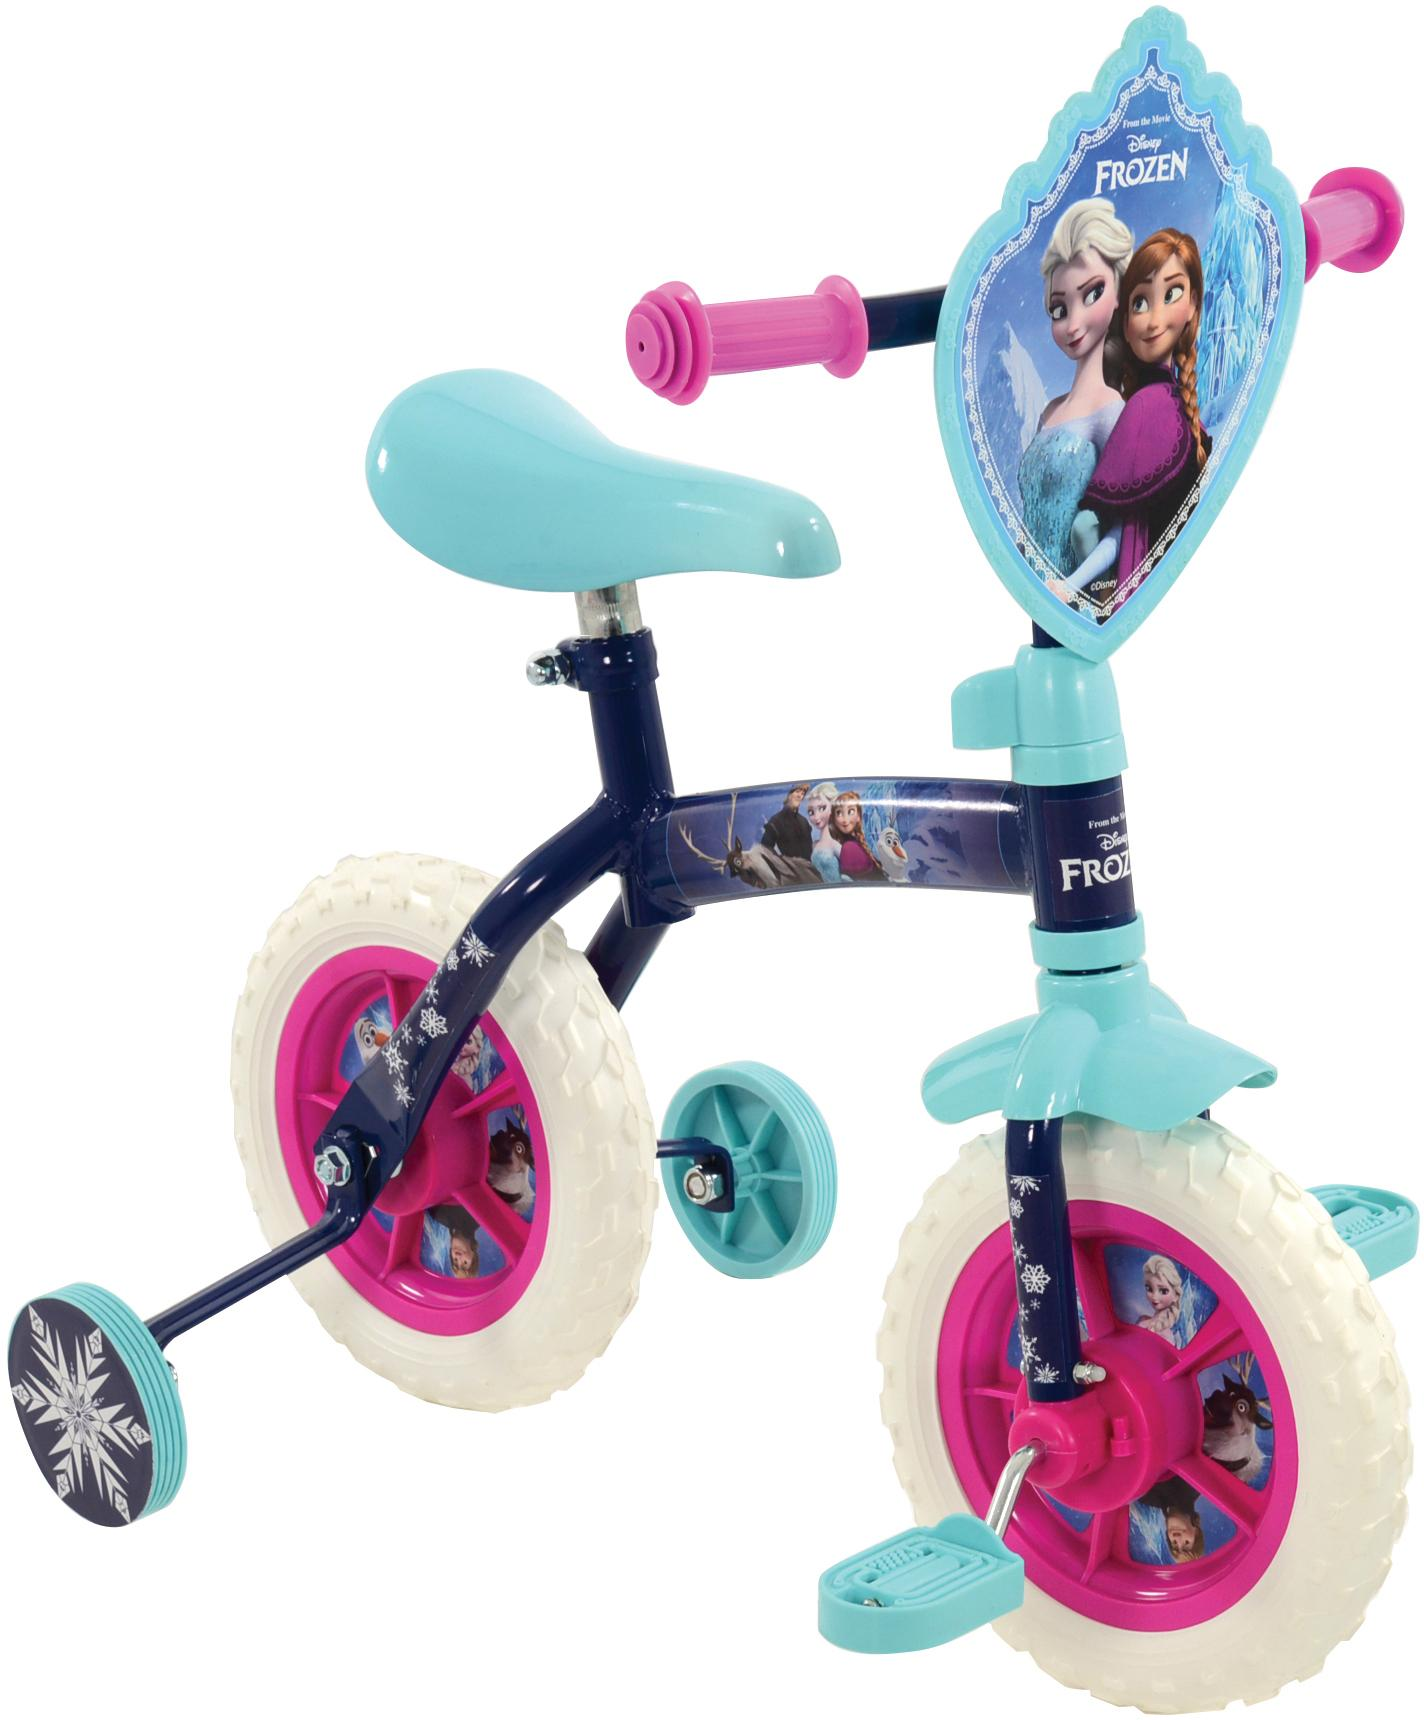 Frozen 2in1 Training Bike - 10 inch Wheel